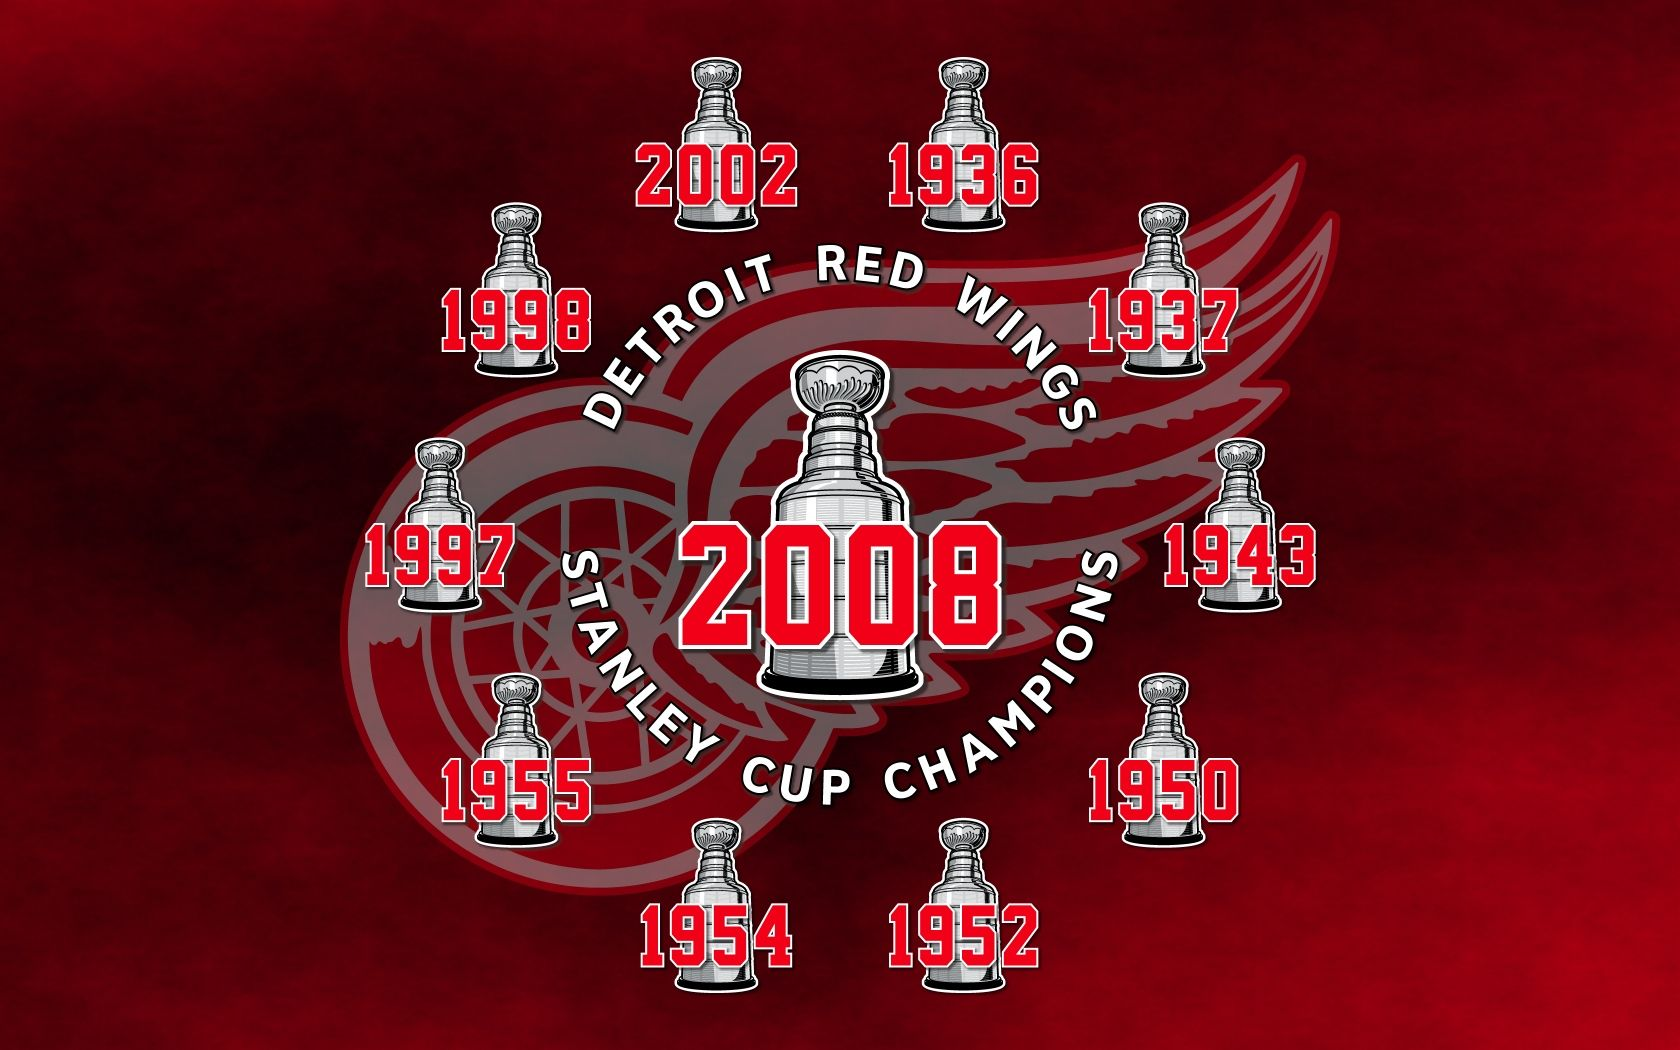 red wings MonkeyWrench32 » 2008 Stanley Cup Champions